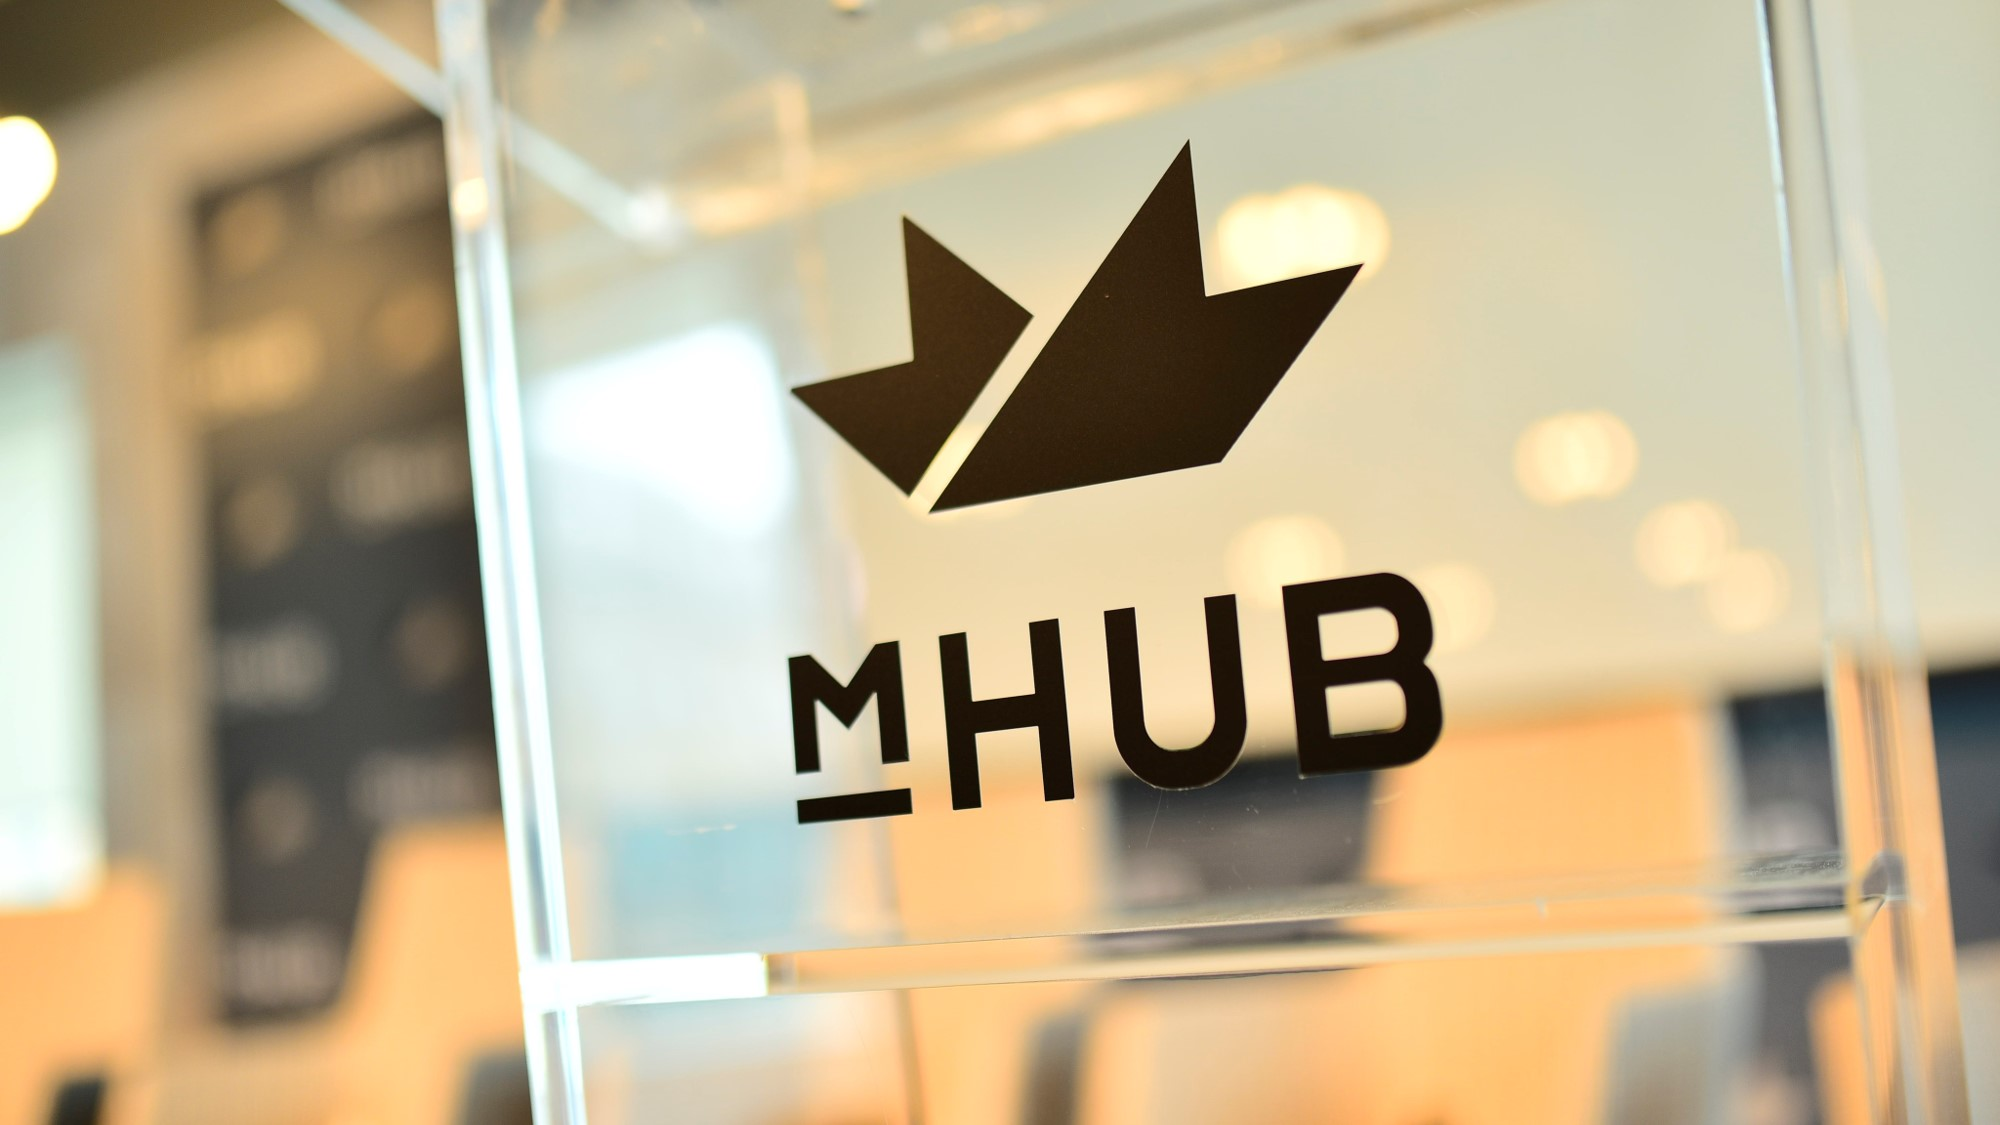 mHUB Receives $300,000 EDA Grant to Support the Administration of $15M Fund and Accelerator Program